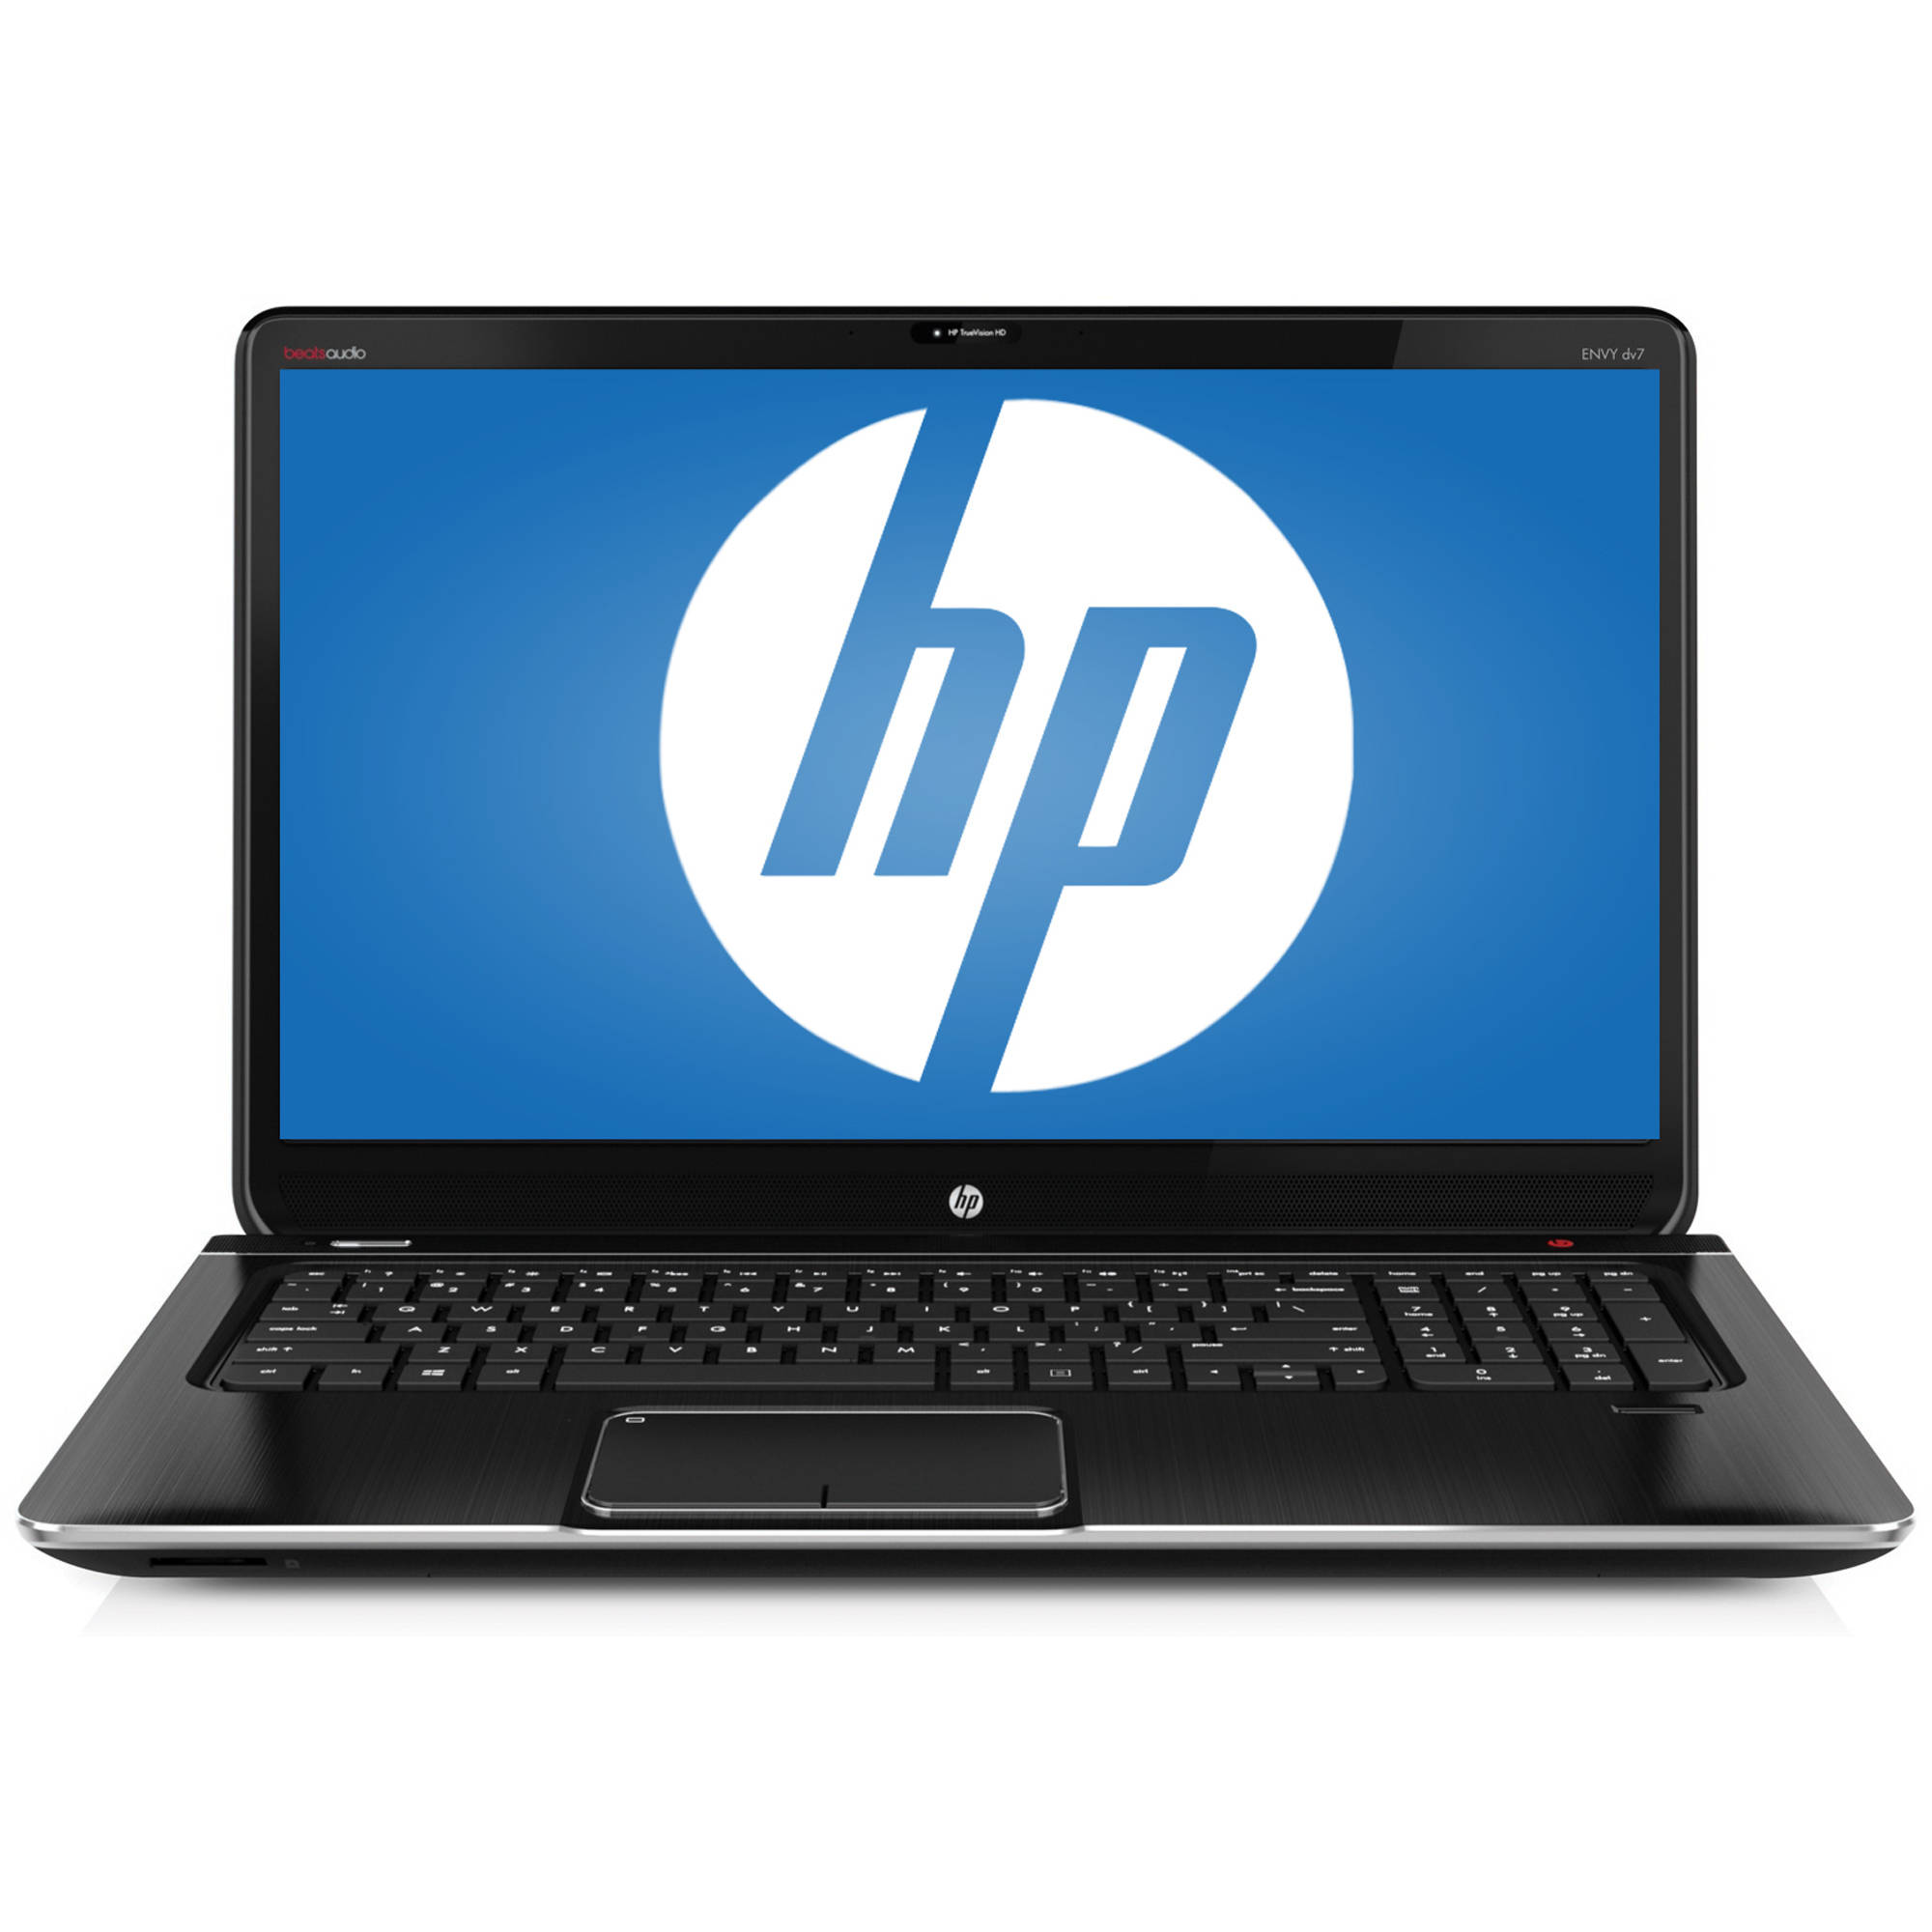 "HP 17.3"" Envy dv7-7227cl Laptop PC with AMD A10-4600M Accelerated Processor and Windows 8"